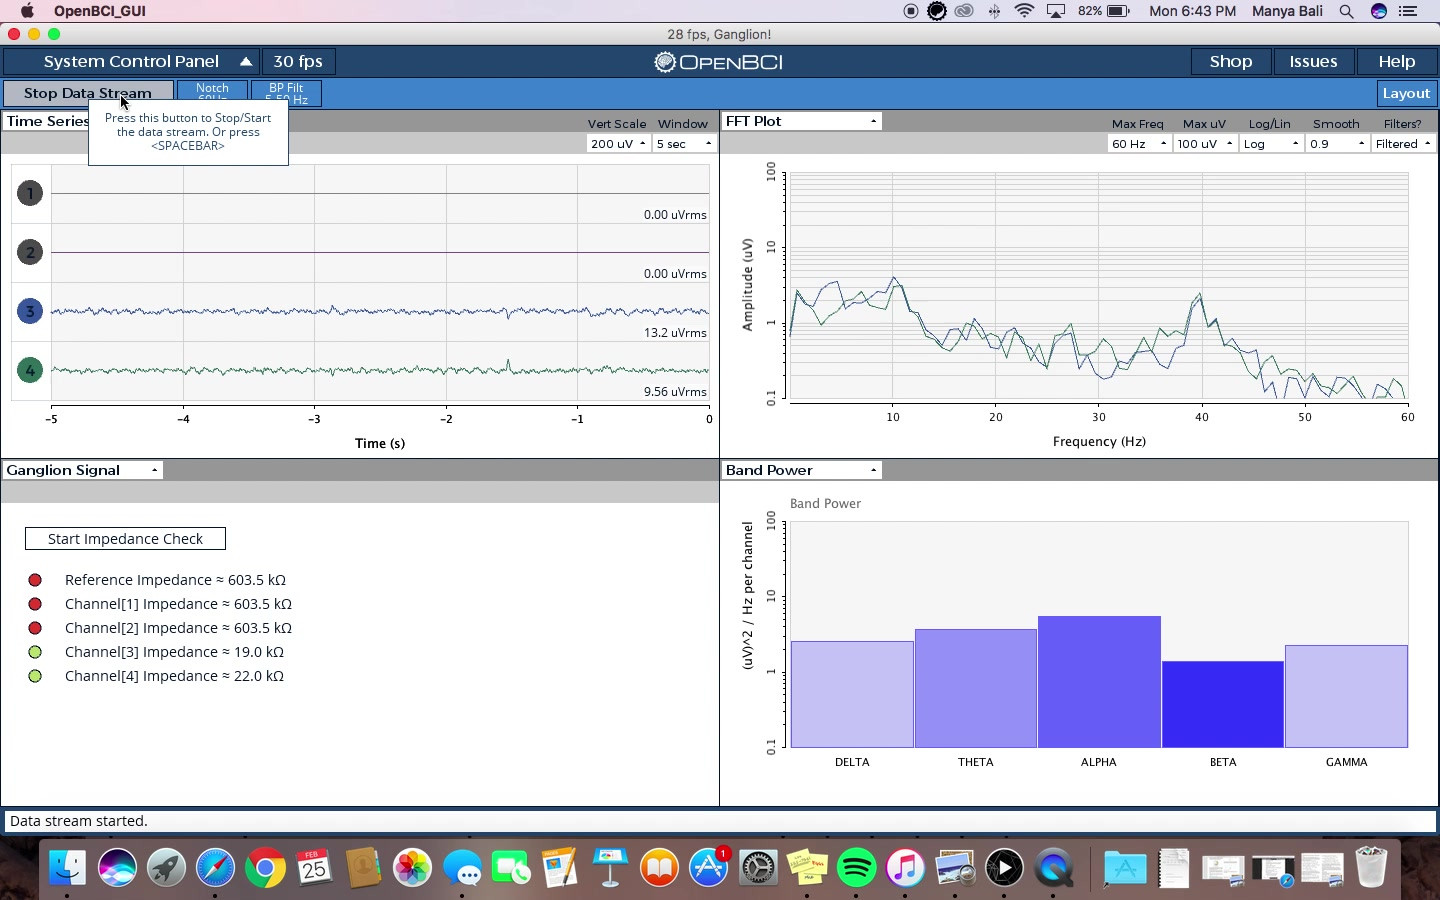 Watch one of our member's brain waves recorded using BCI!